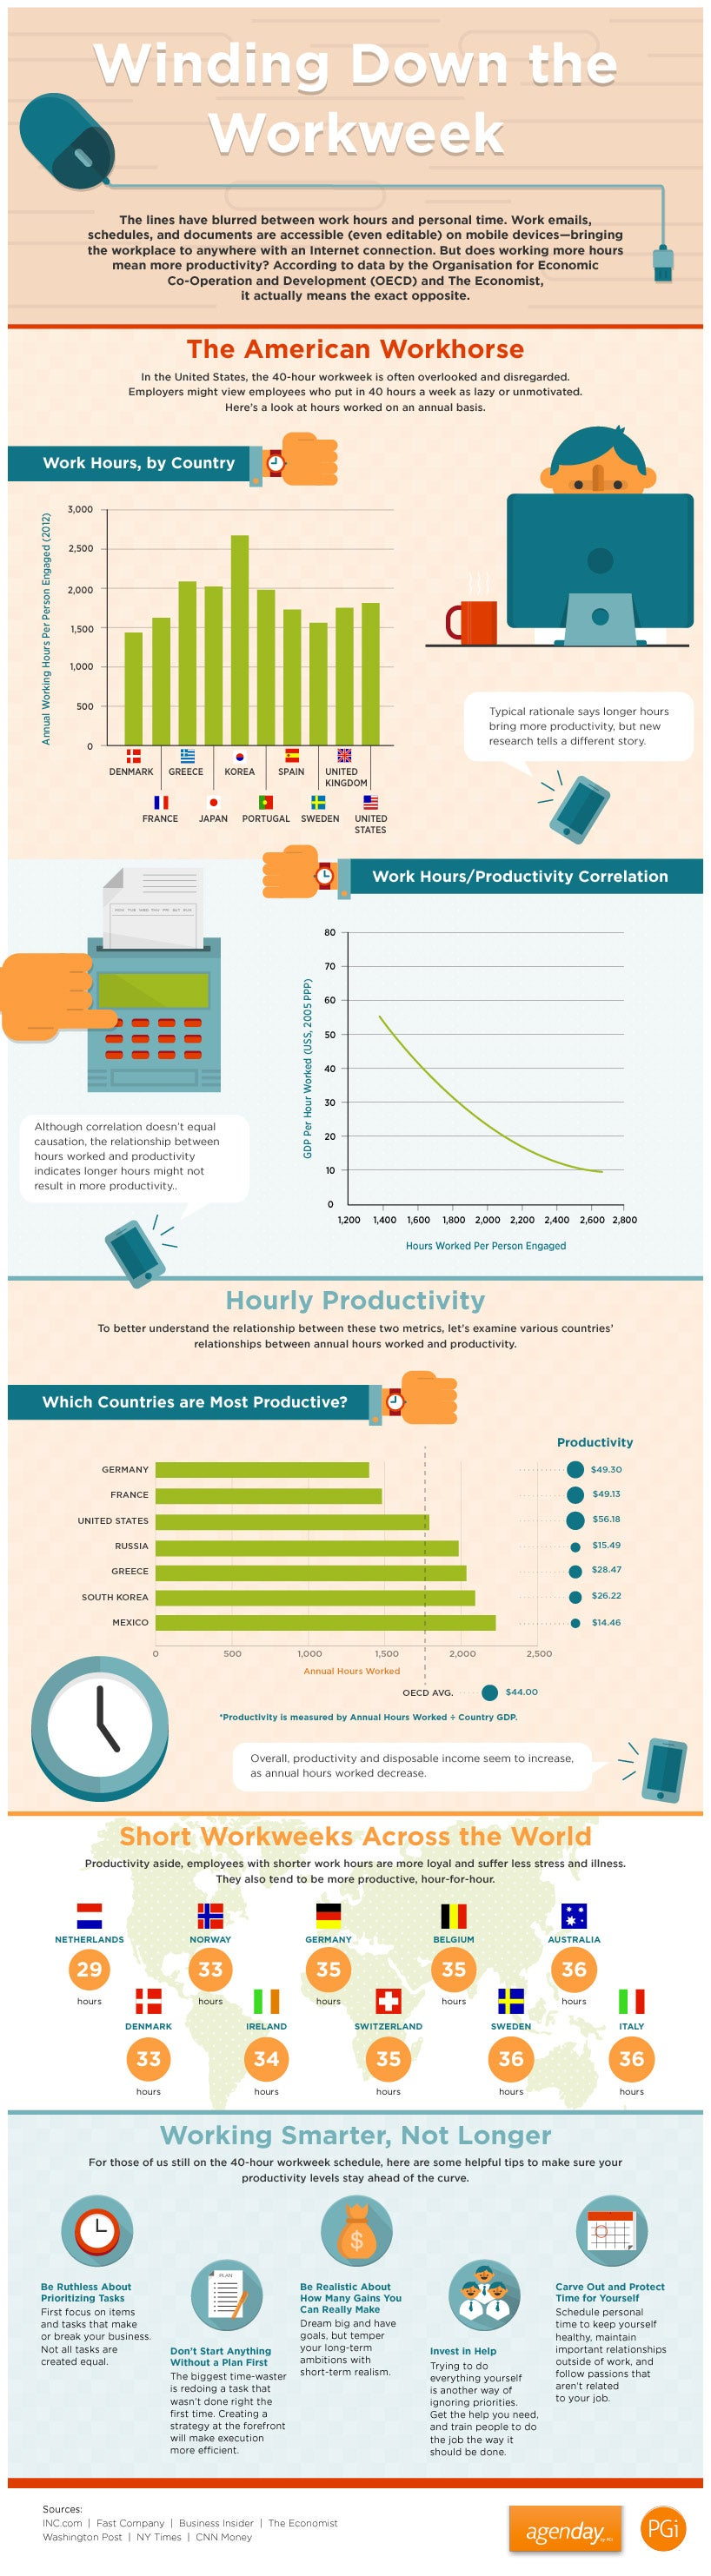 Working Endless Hours Does Not Make You a Hero (Infographic)